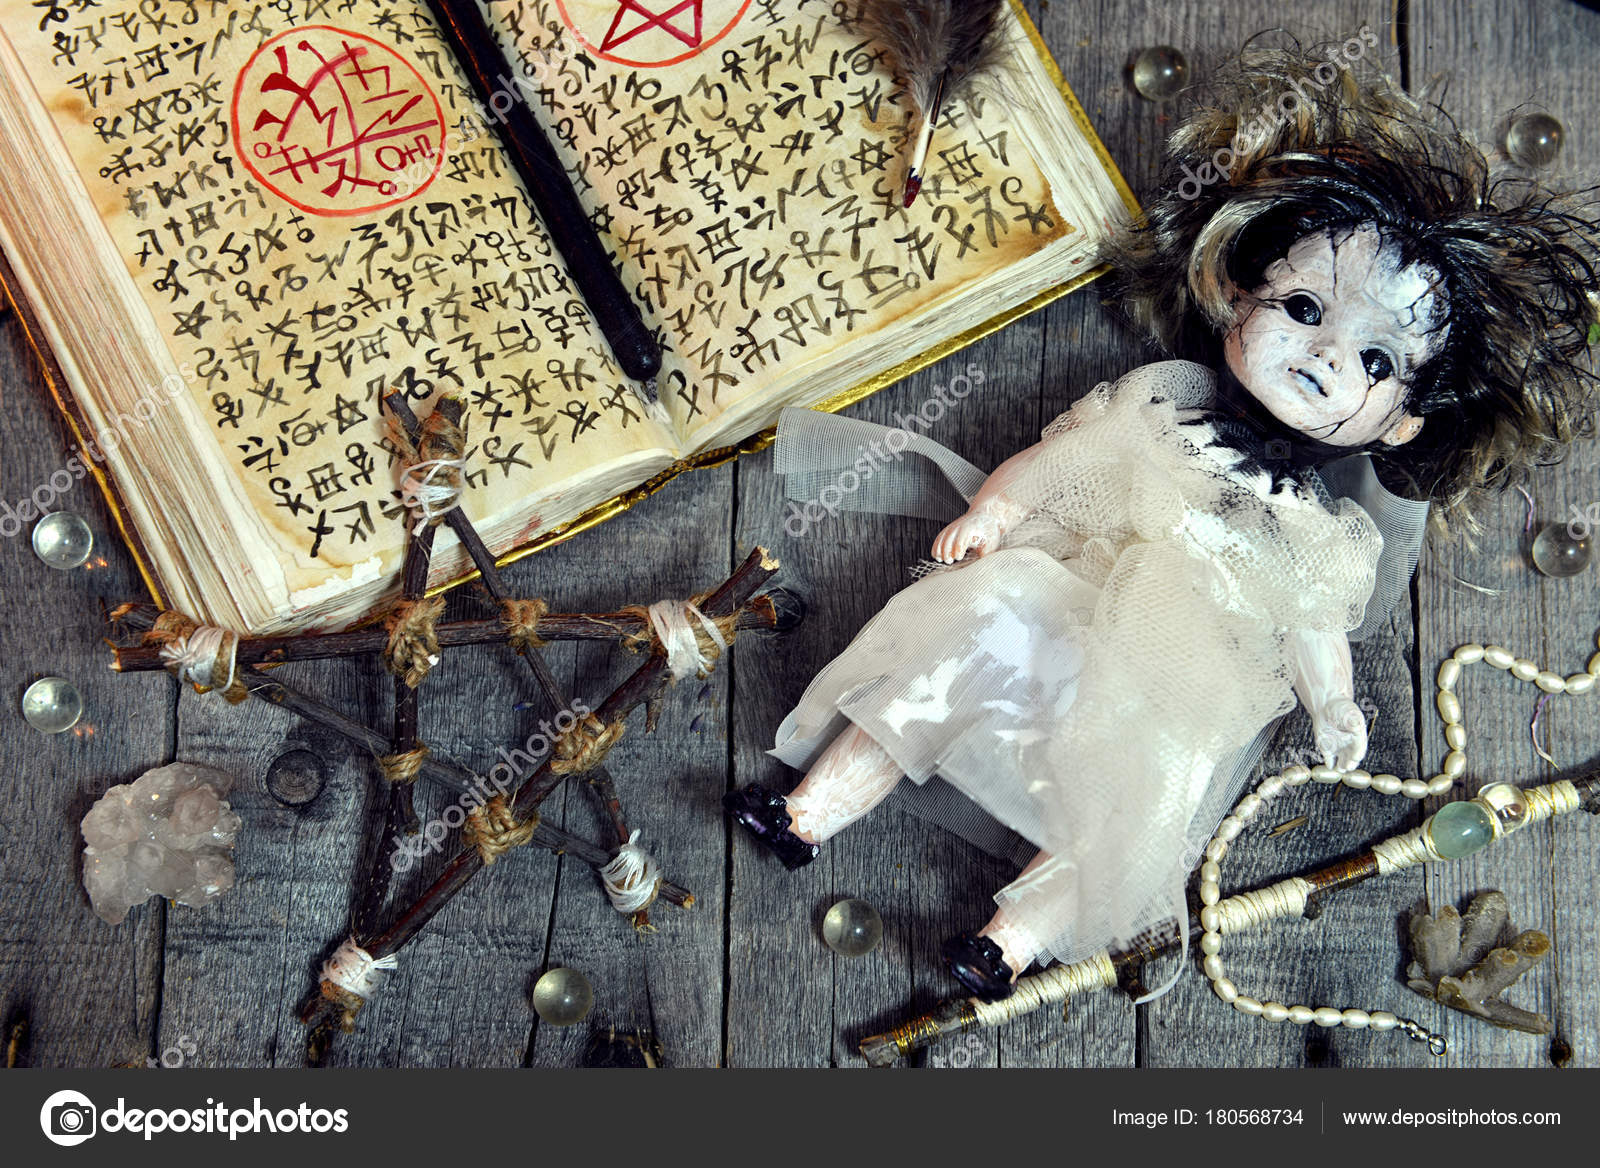 Scary Doll Pentagram Open Magic Book Evil Symbols Witch Table